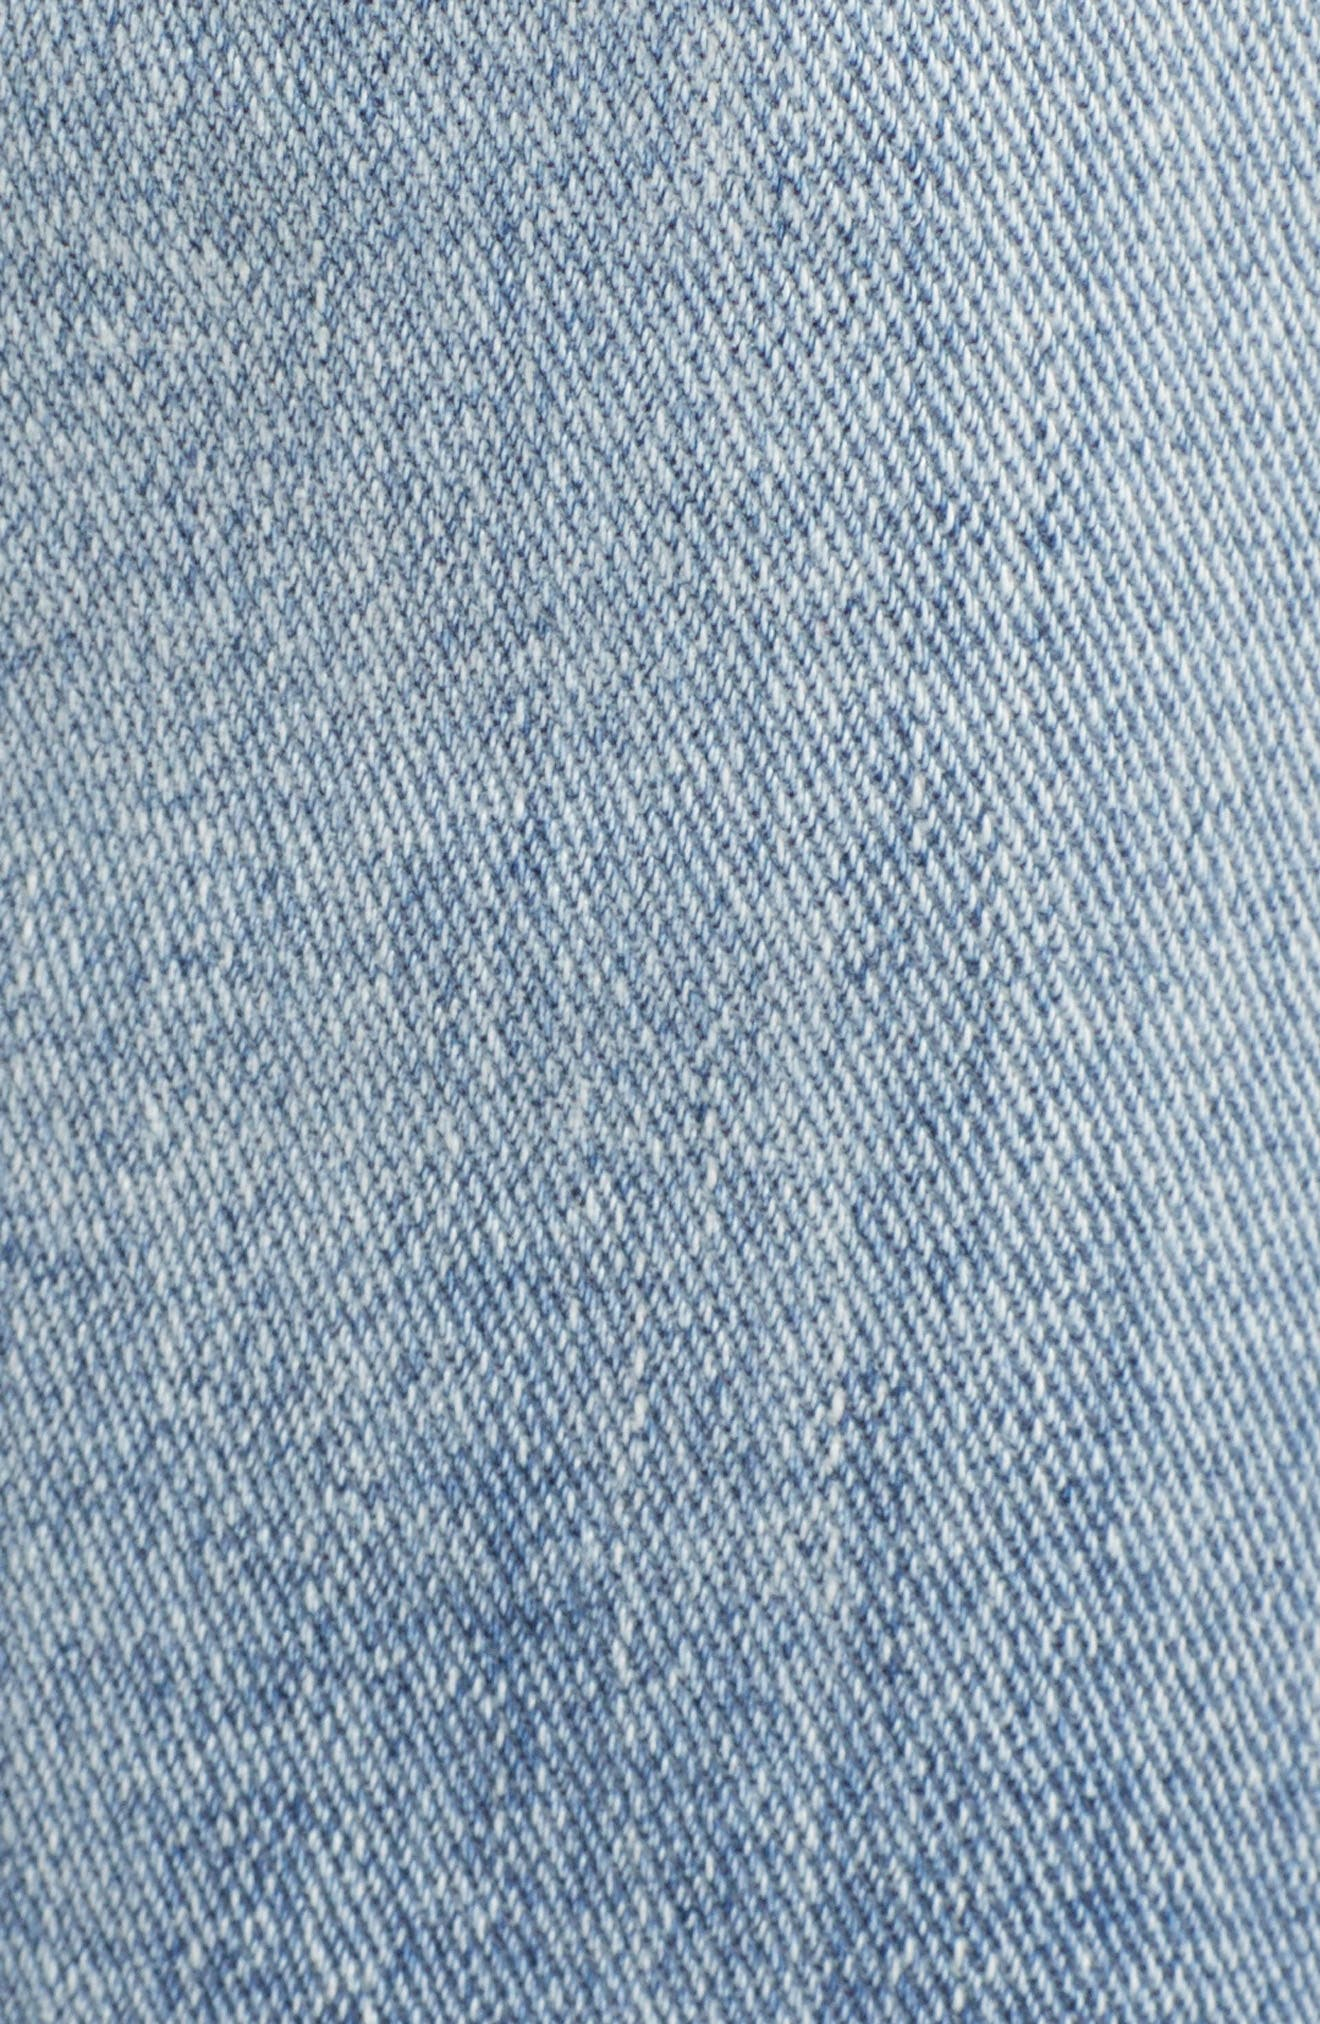 Jagger Ripped Skinny Jeans,                             Alternate thumbnail 6, color,                             LIGHT WASH